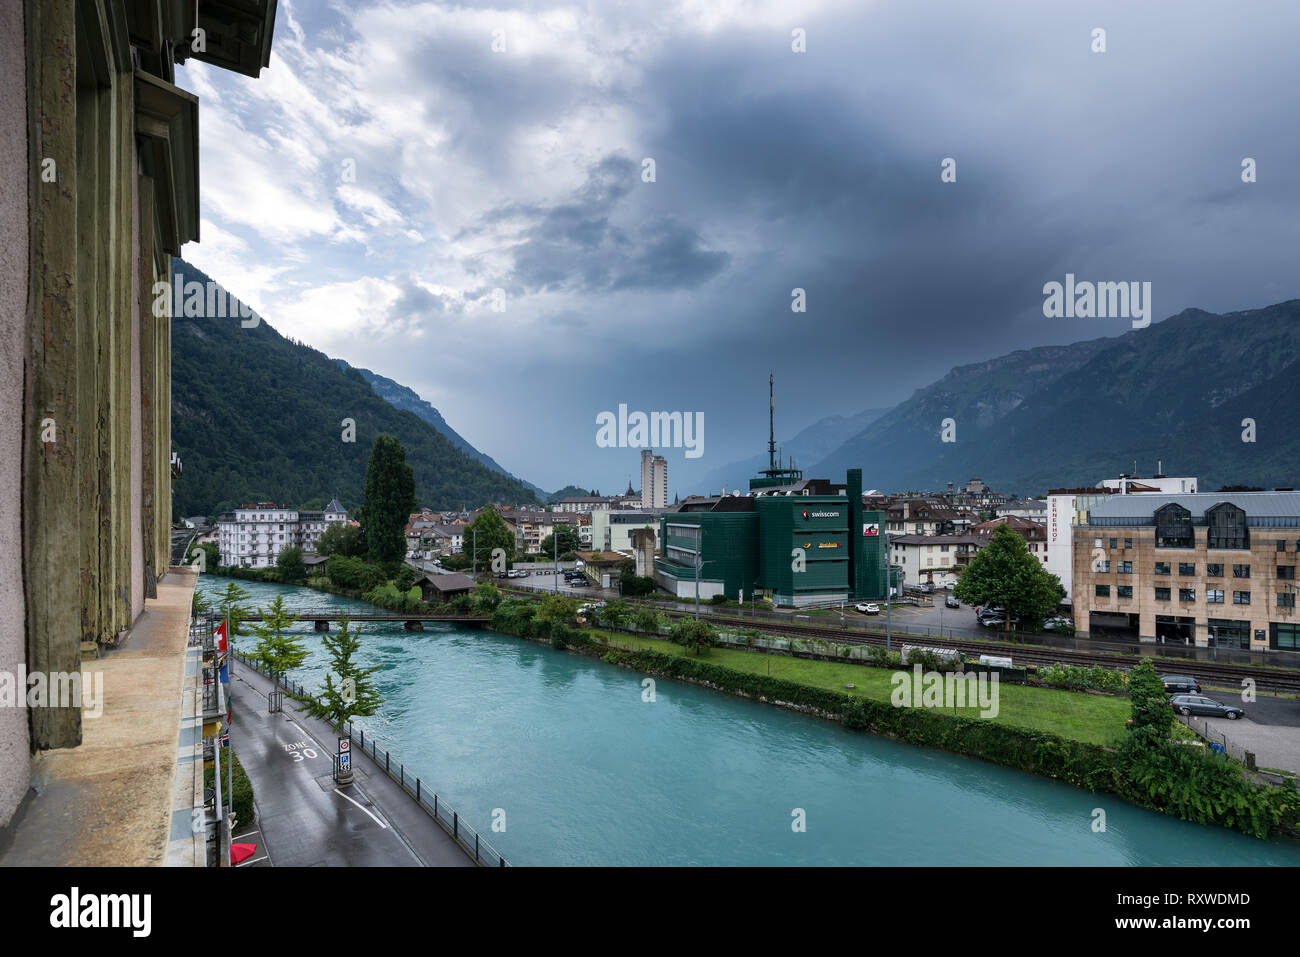 Rainy day in Interlaken, Switzerland - Stock Image